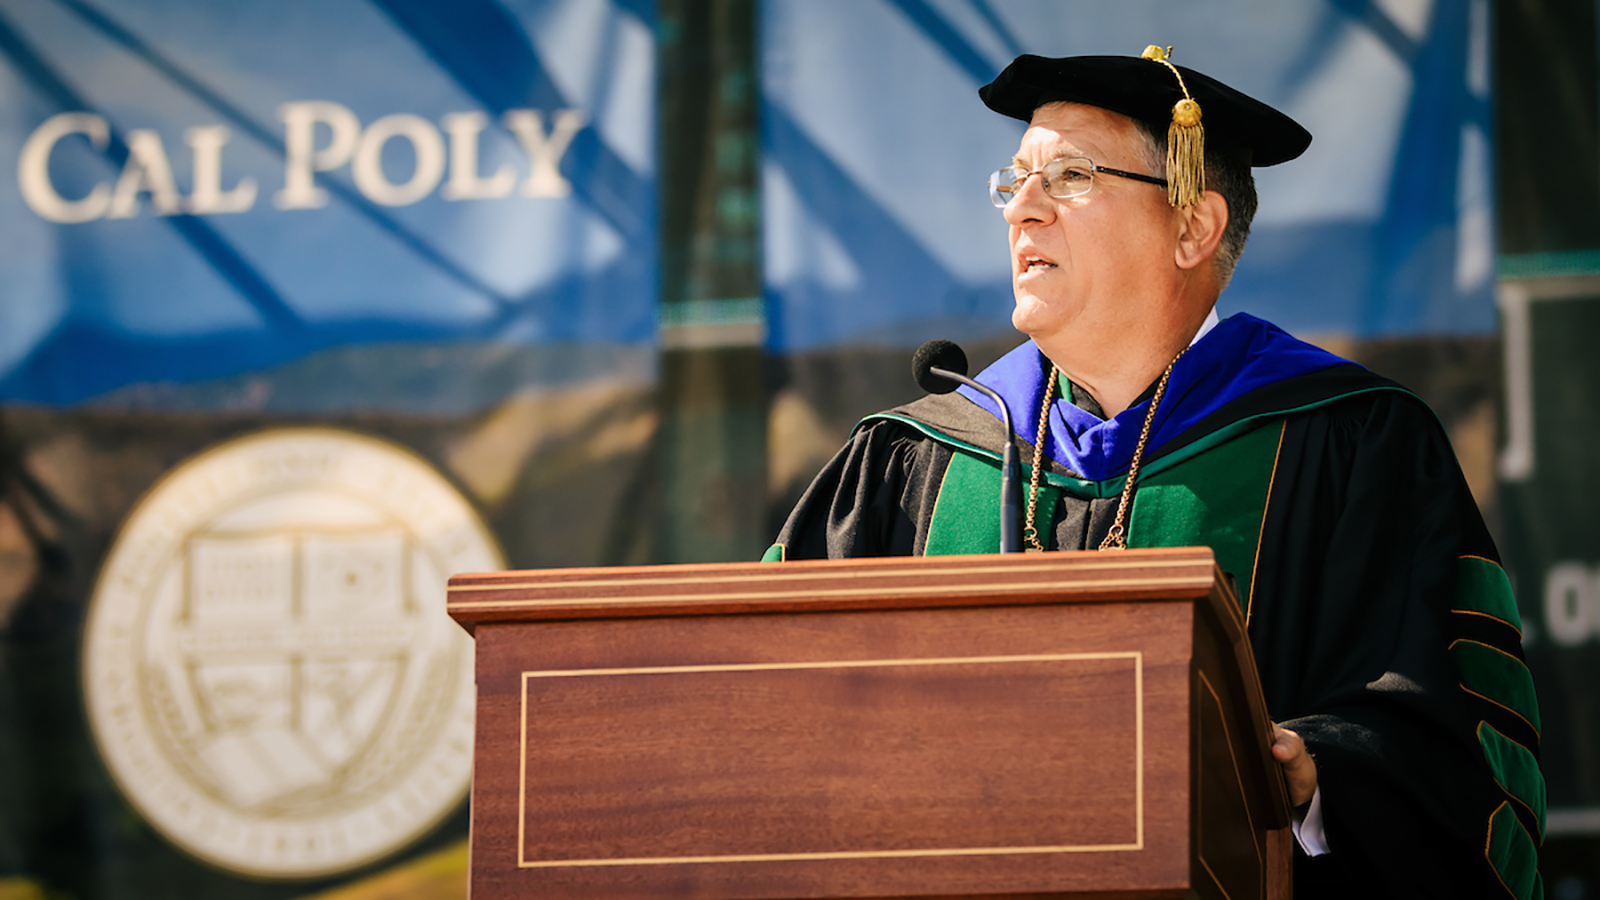 President Armstrong, in graduation regalia, stands at a podium with the sun shining on a Cal Poly banner behind him.